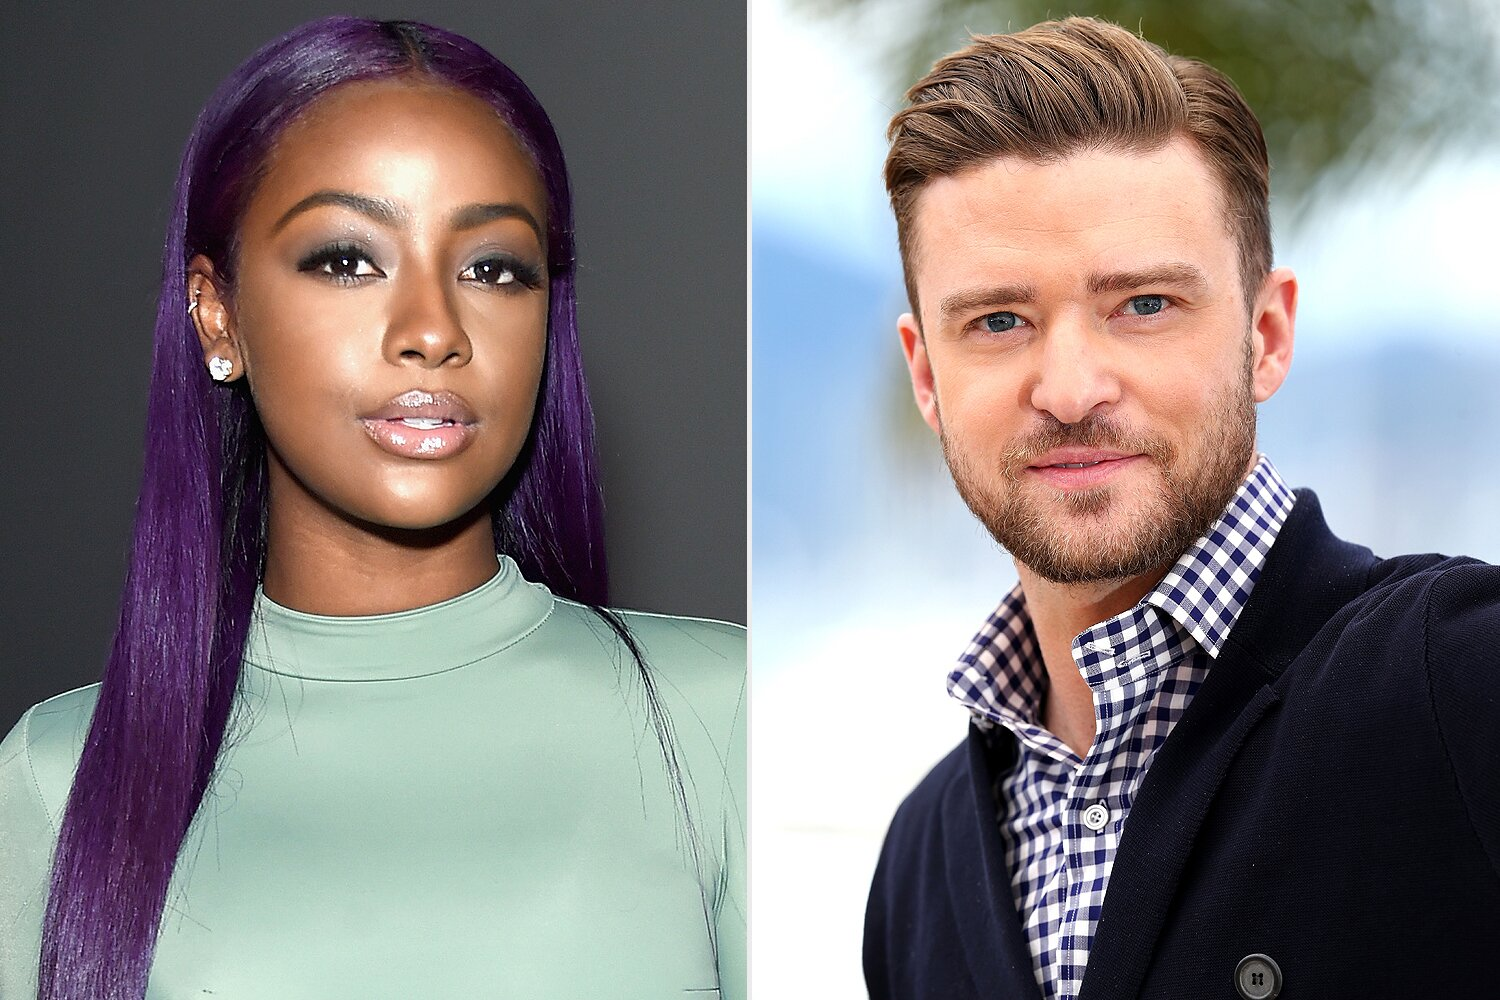 Justine Skye Talks Self-Care and New Music for Pandora's Calling All  Collectors Video Series | PEOPLE.com